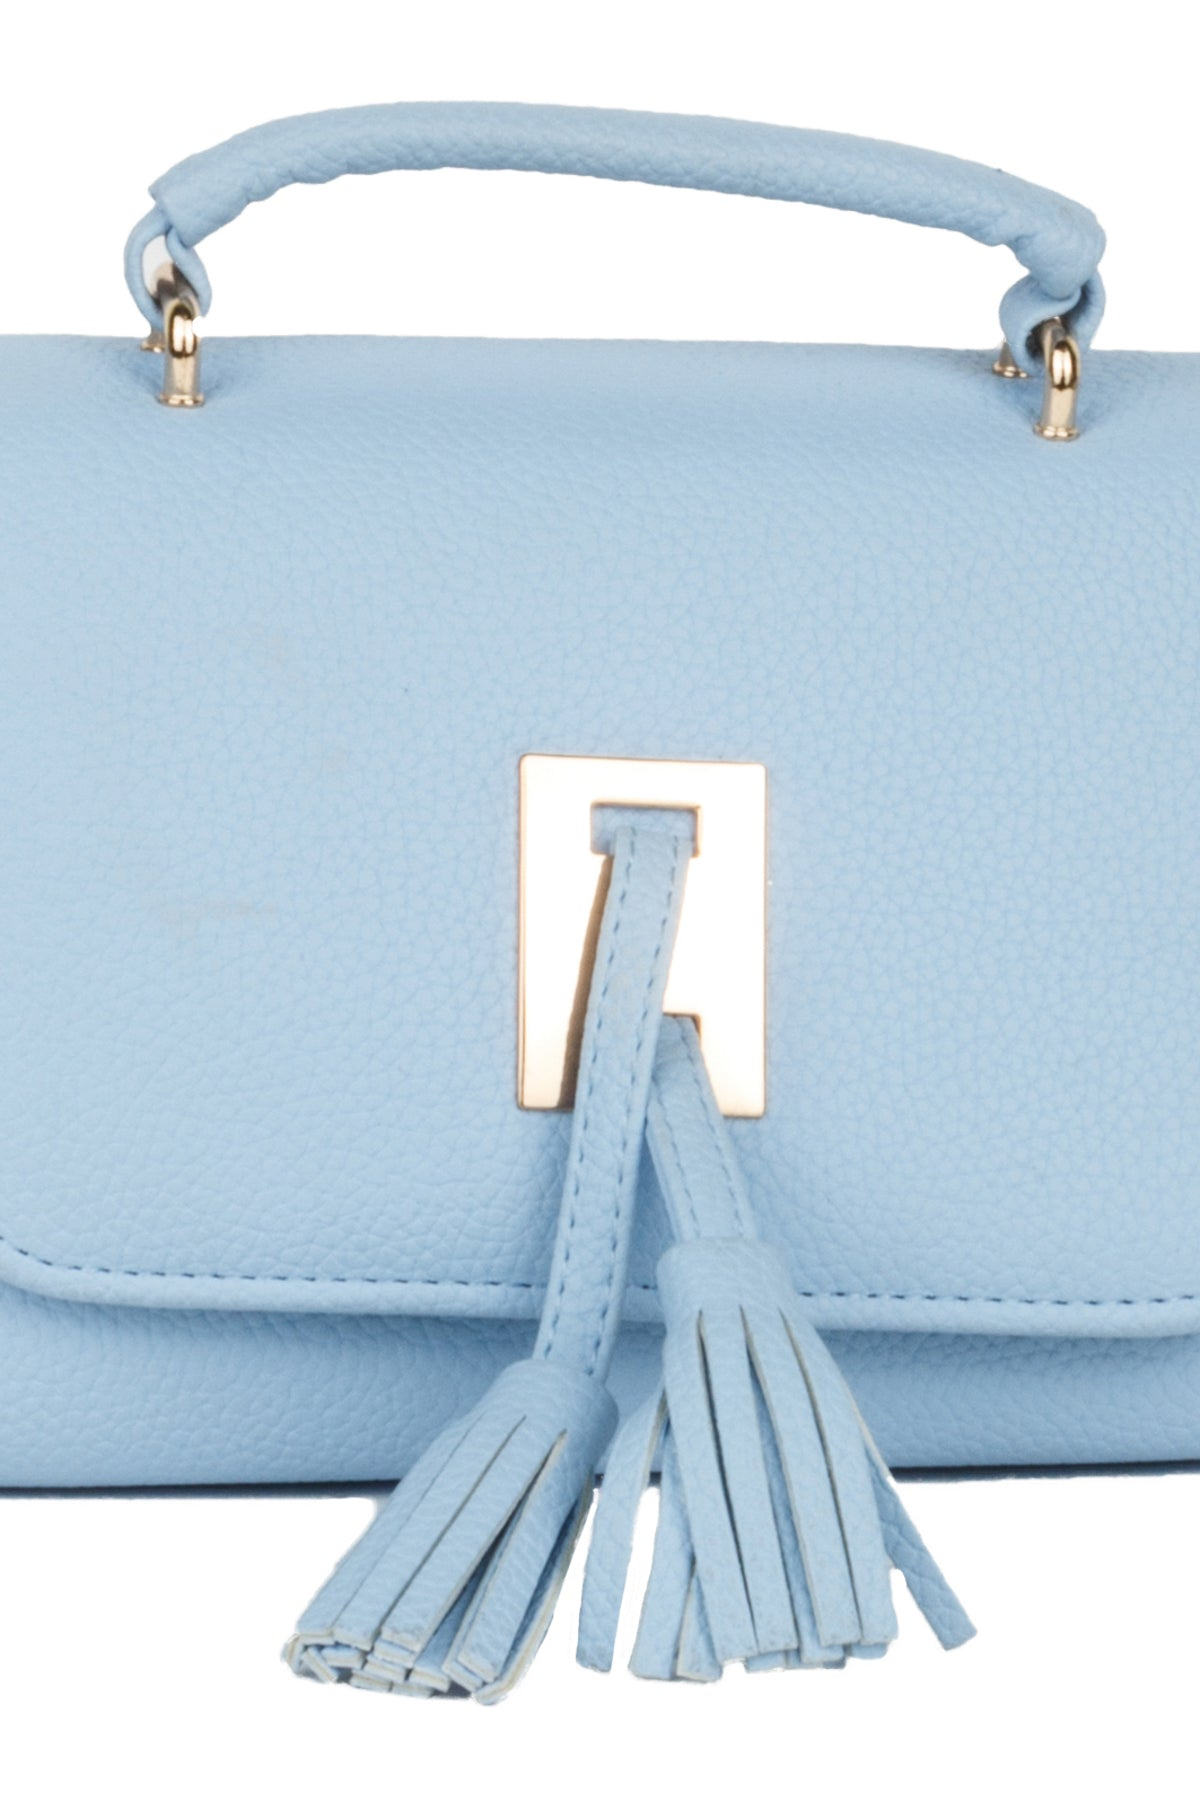 Small Fringe Detail Front Flap Handbag Purse